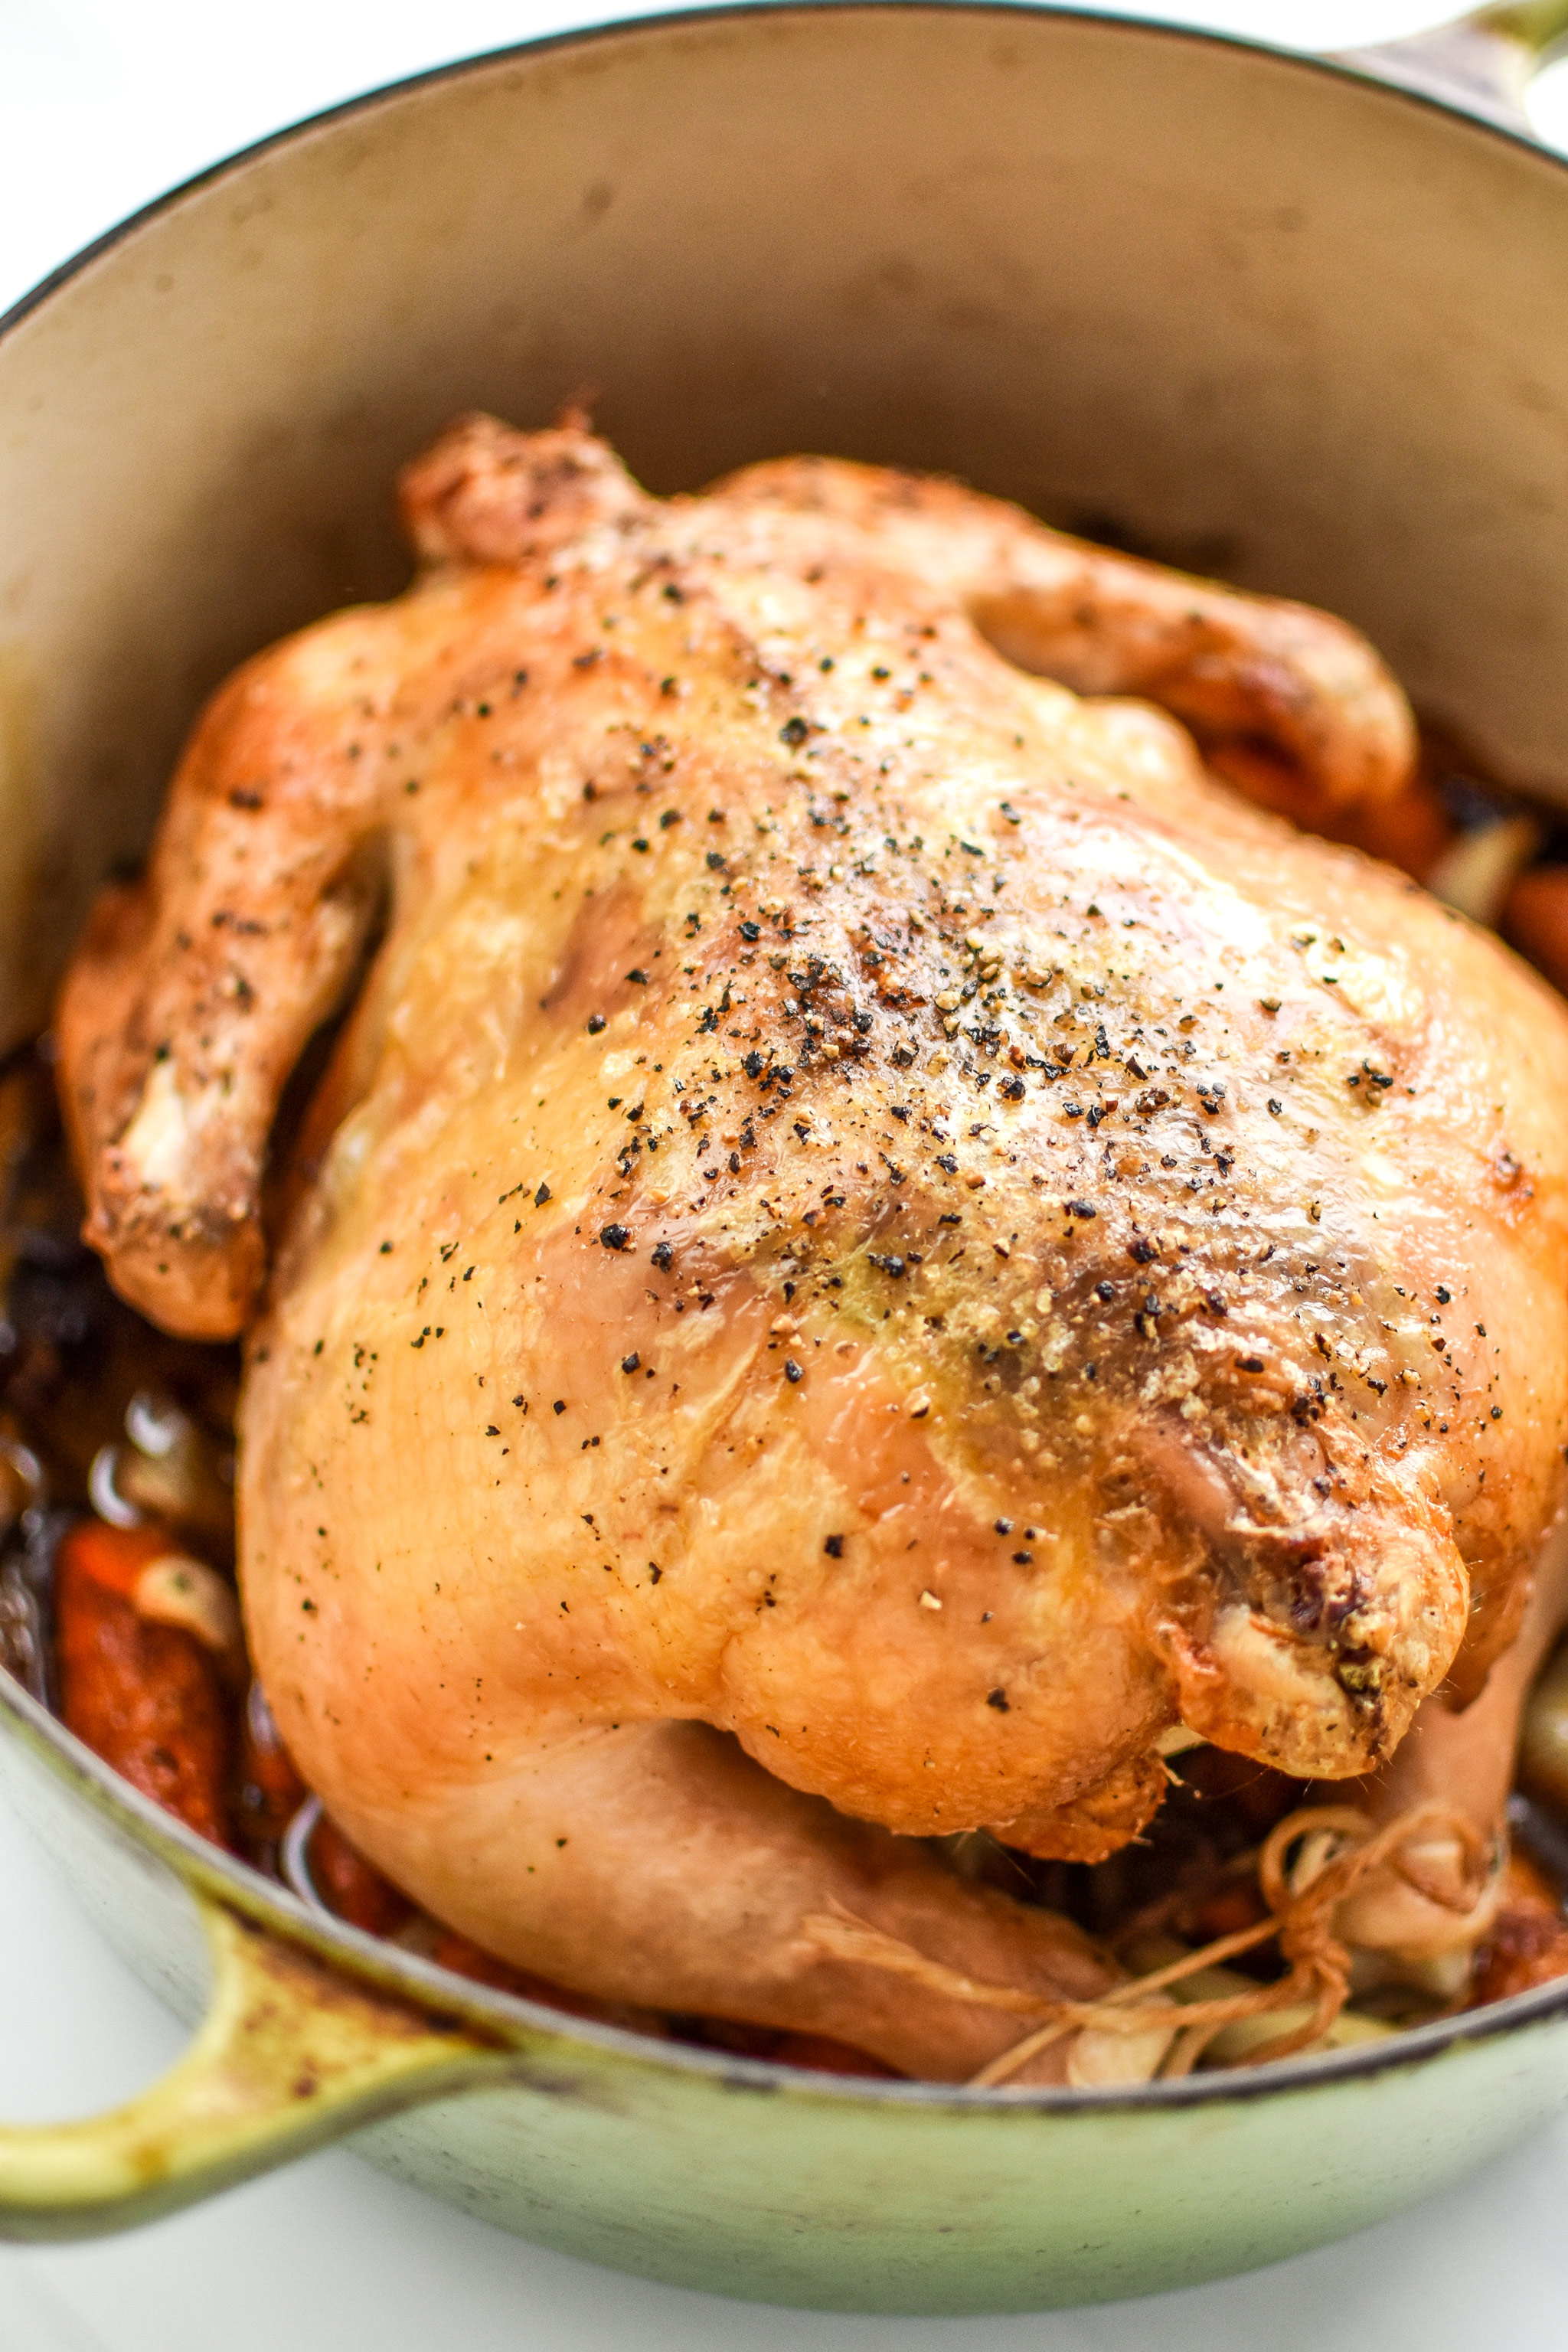 Simple Whole Roast Chicken Whole30 Paleo Project Meal Plan